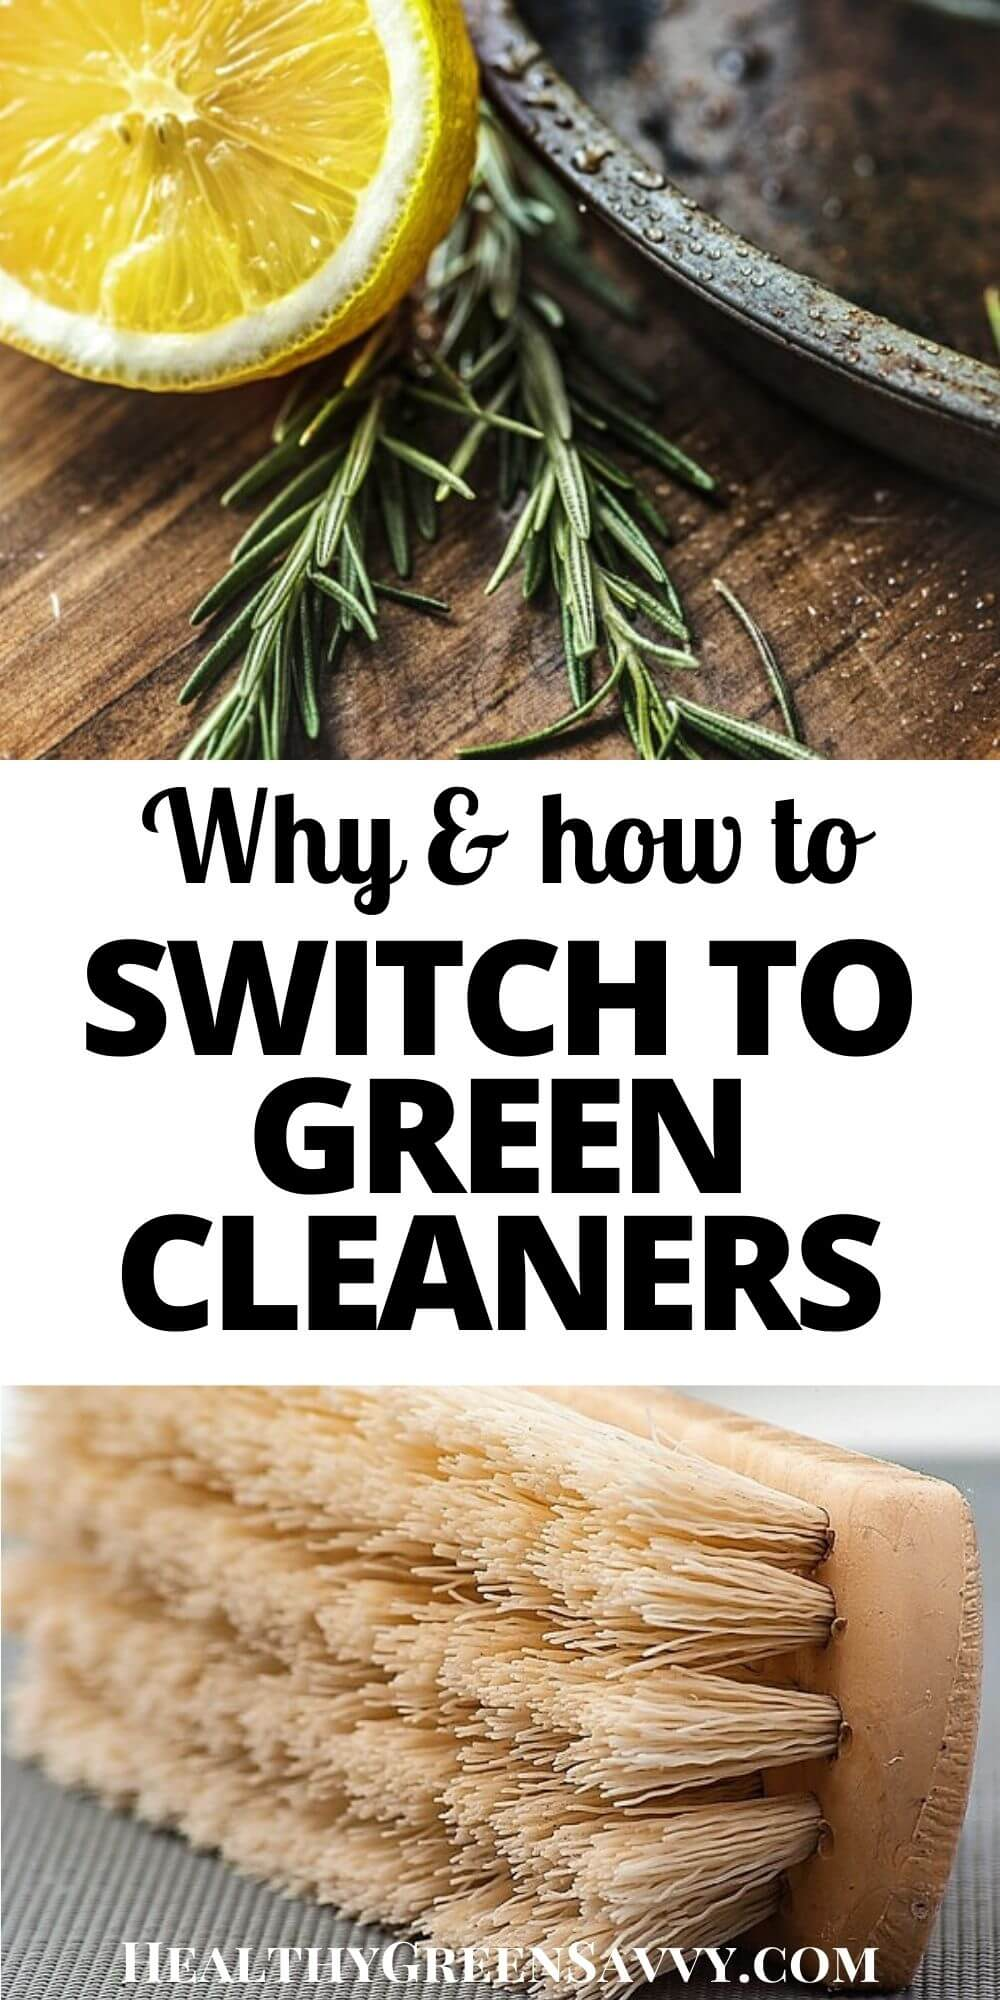 Easy Homemade Cleaners to Avoid Toxic Chemicals